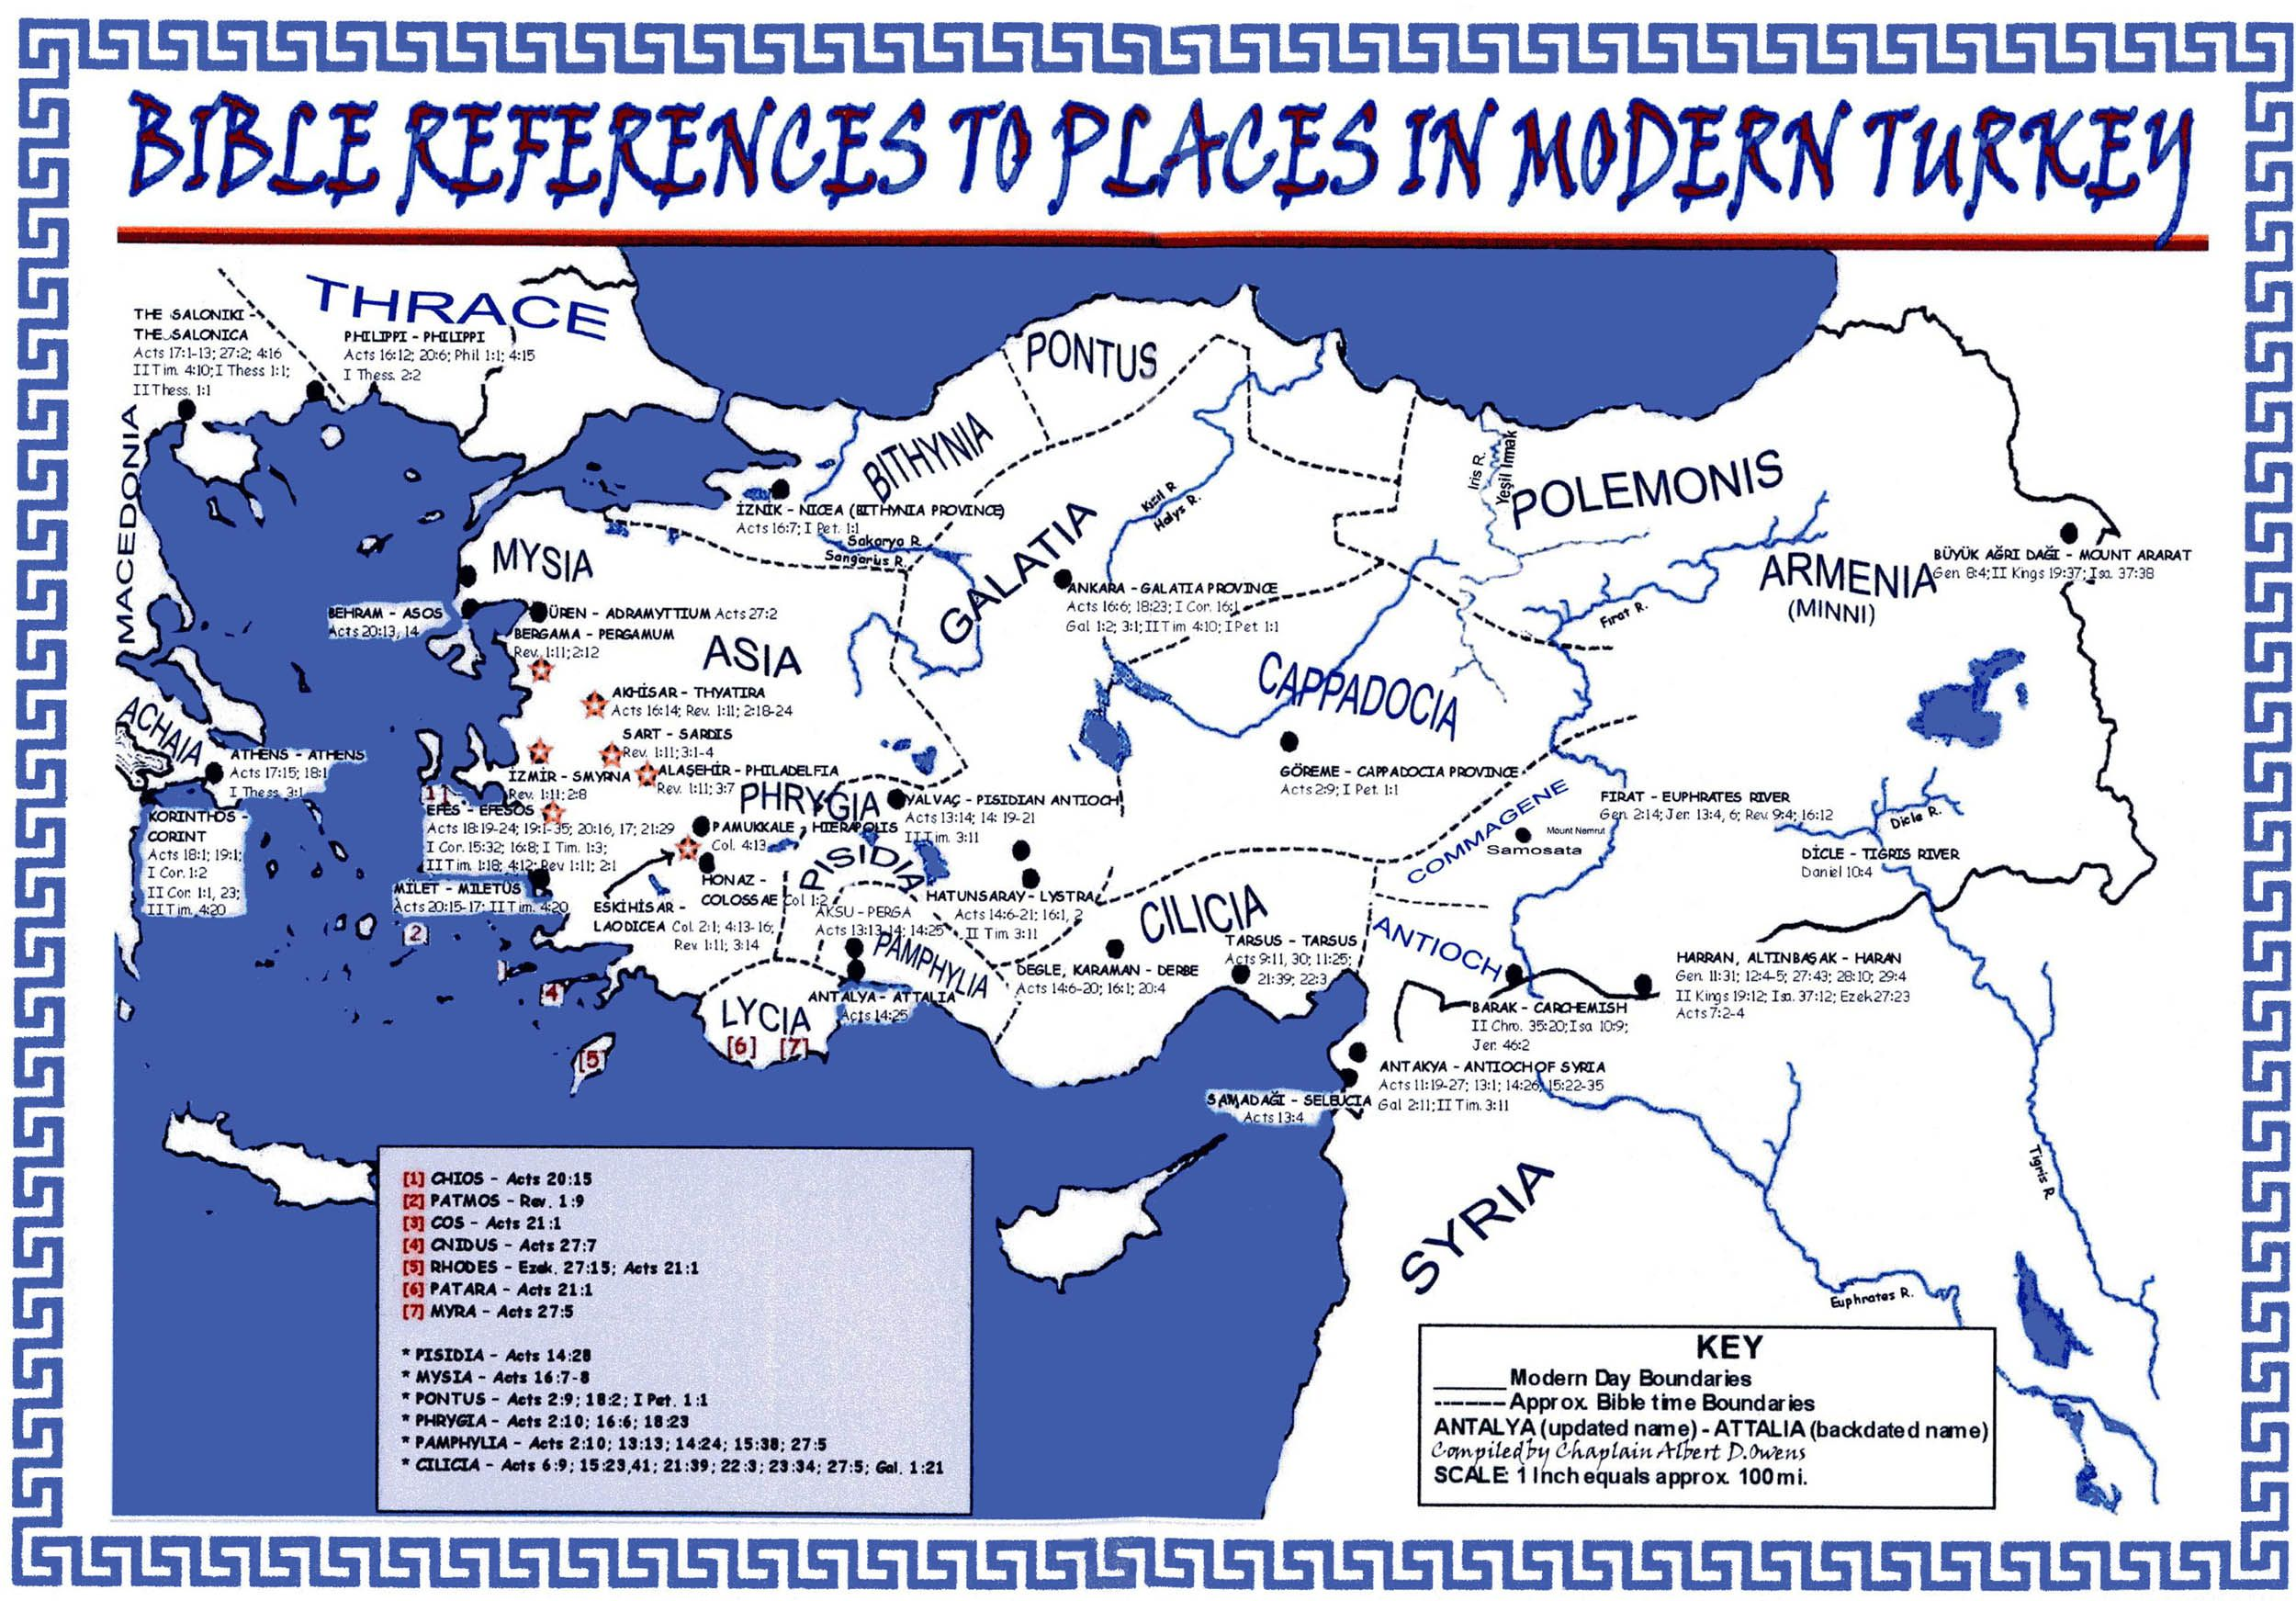 Map Of Asia Minor In Biblical Times.Map Asia Biblical Times World Maps Asia Map Bible Study Biblical